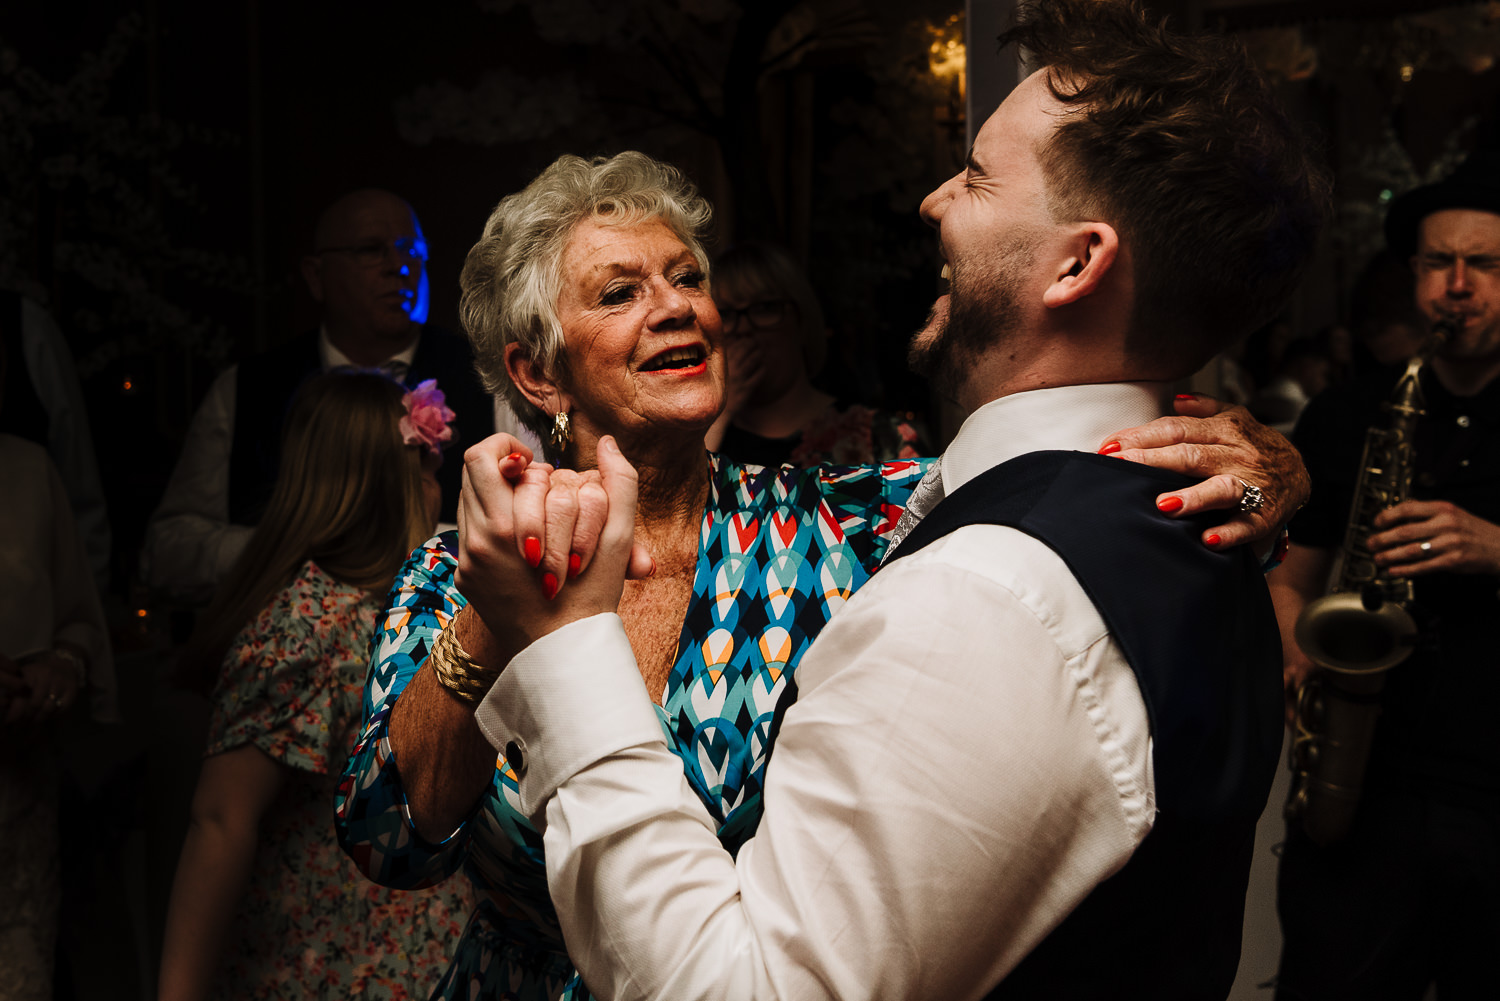 Gran and best man dancing